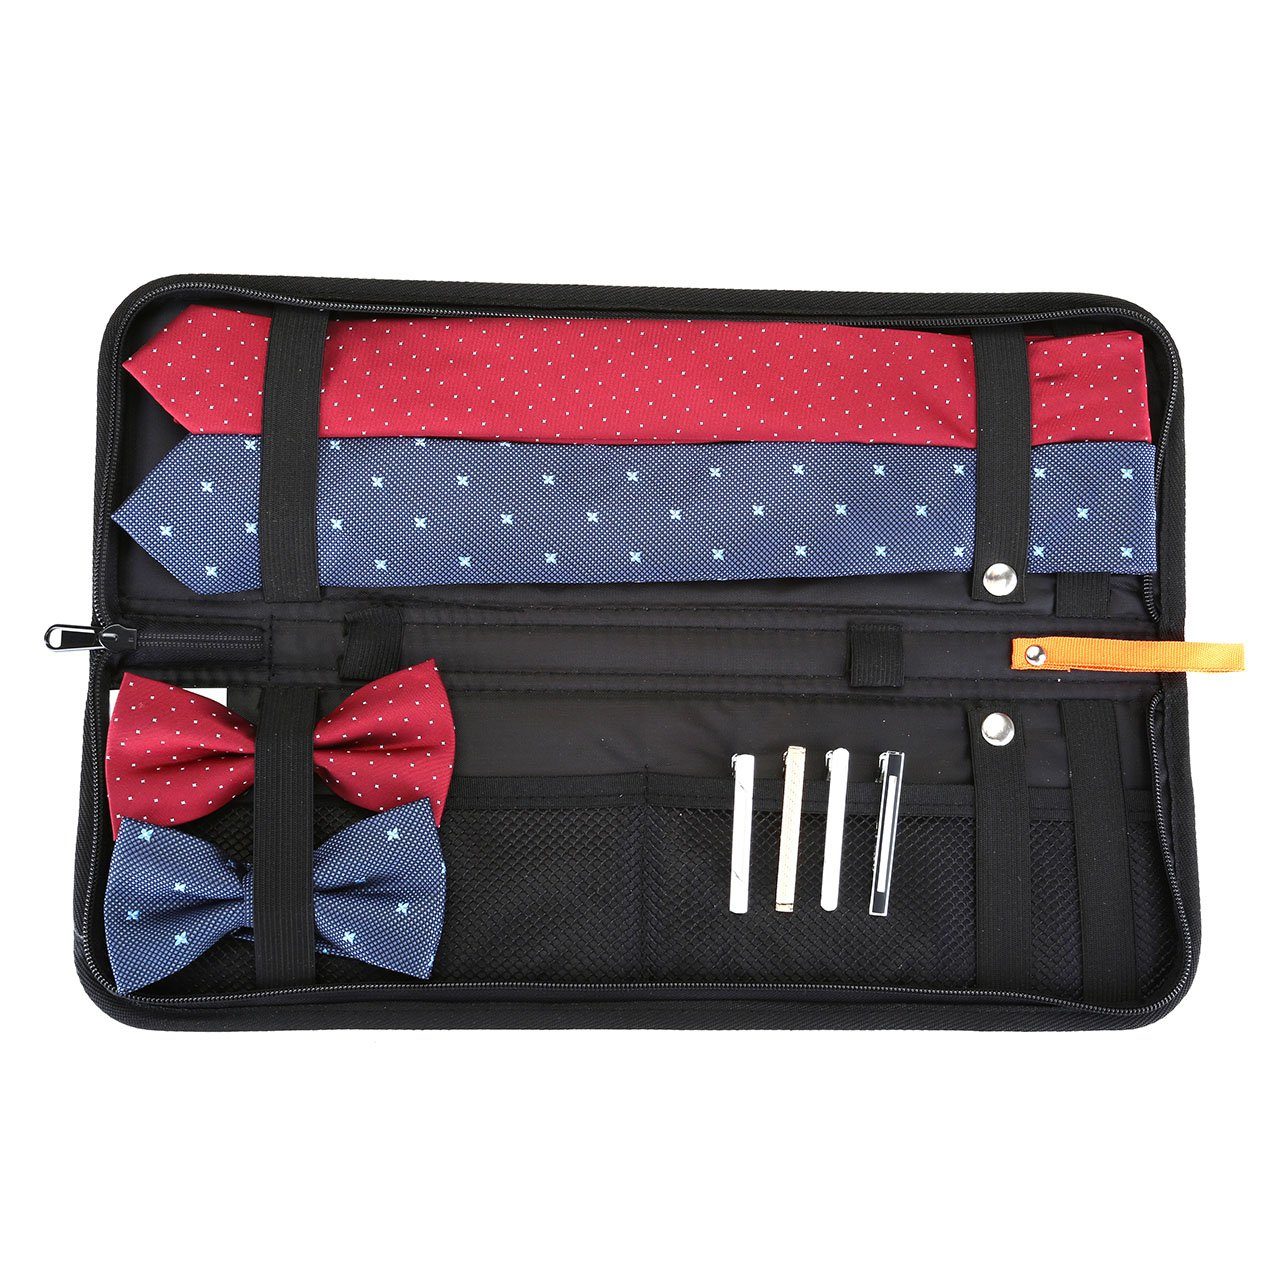 Yerwal Travel Tie Case, Men Business Travel Essentials Necktie Box Travel Tie Case Tie Holder Storage